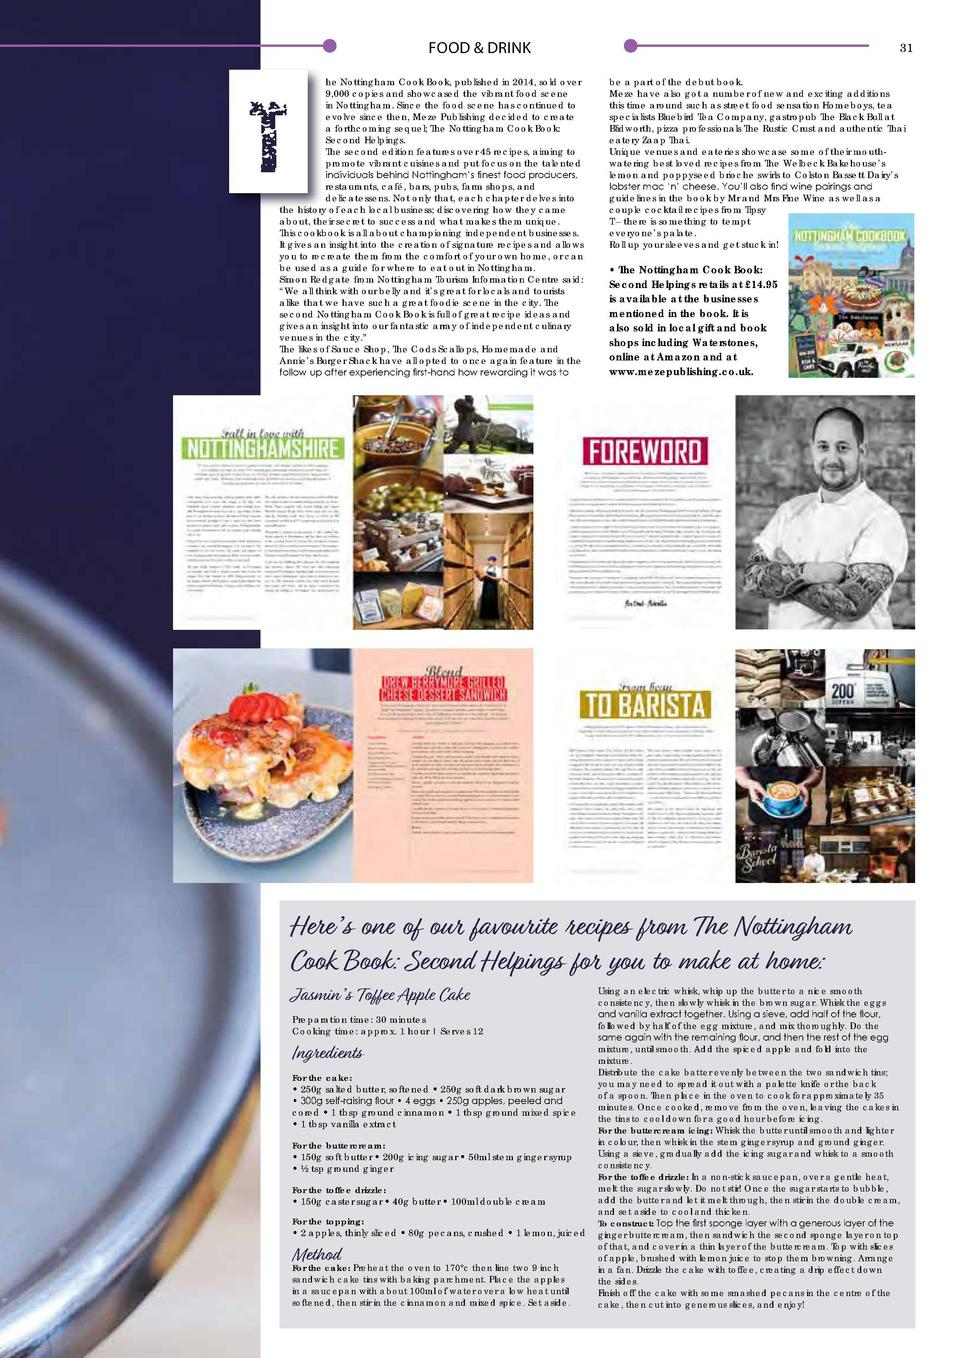 FOOD   DRINK  30  Second Helpings  Following the huge success of The Nottingham Cook Book, Meze Publishing has given the p...